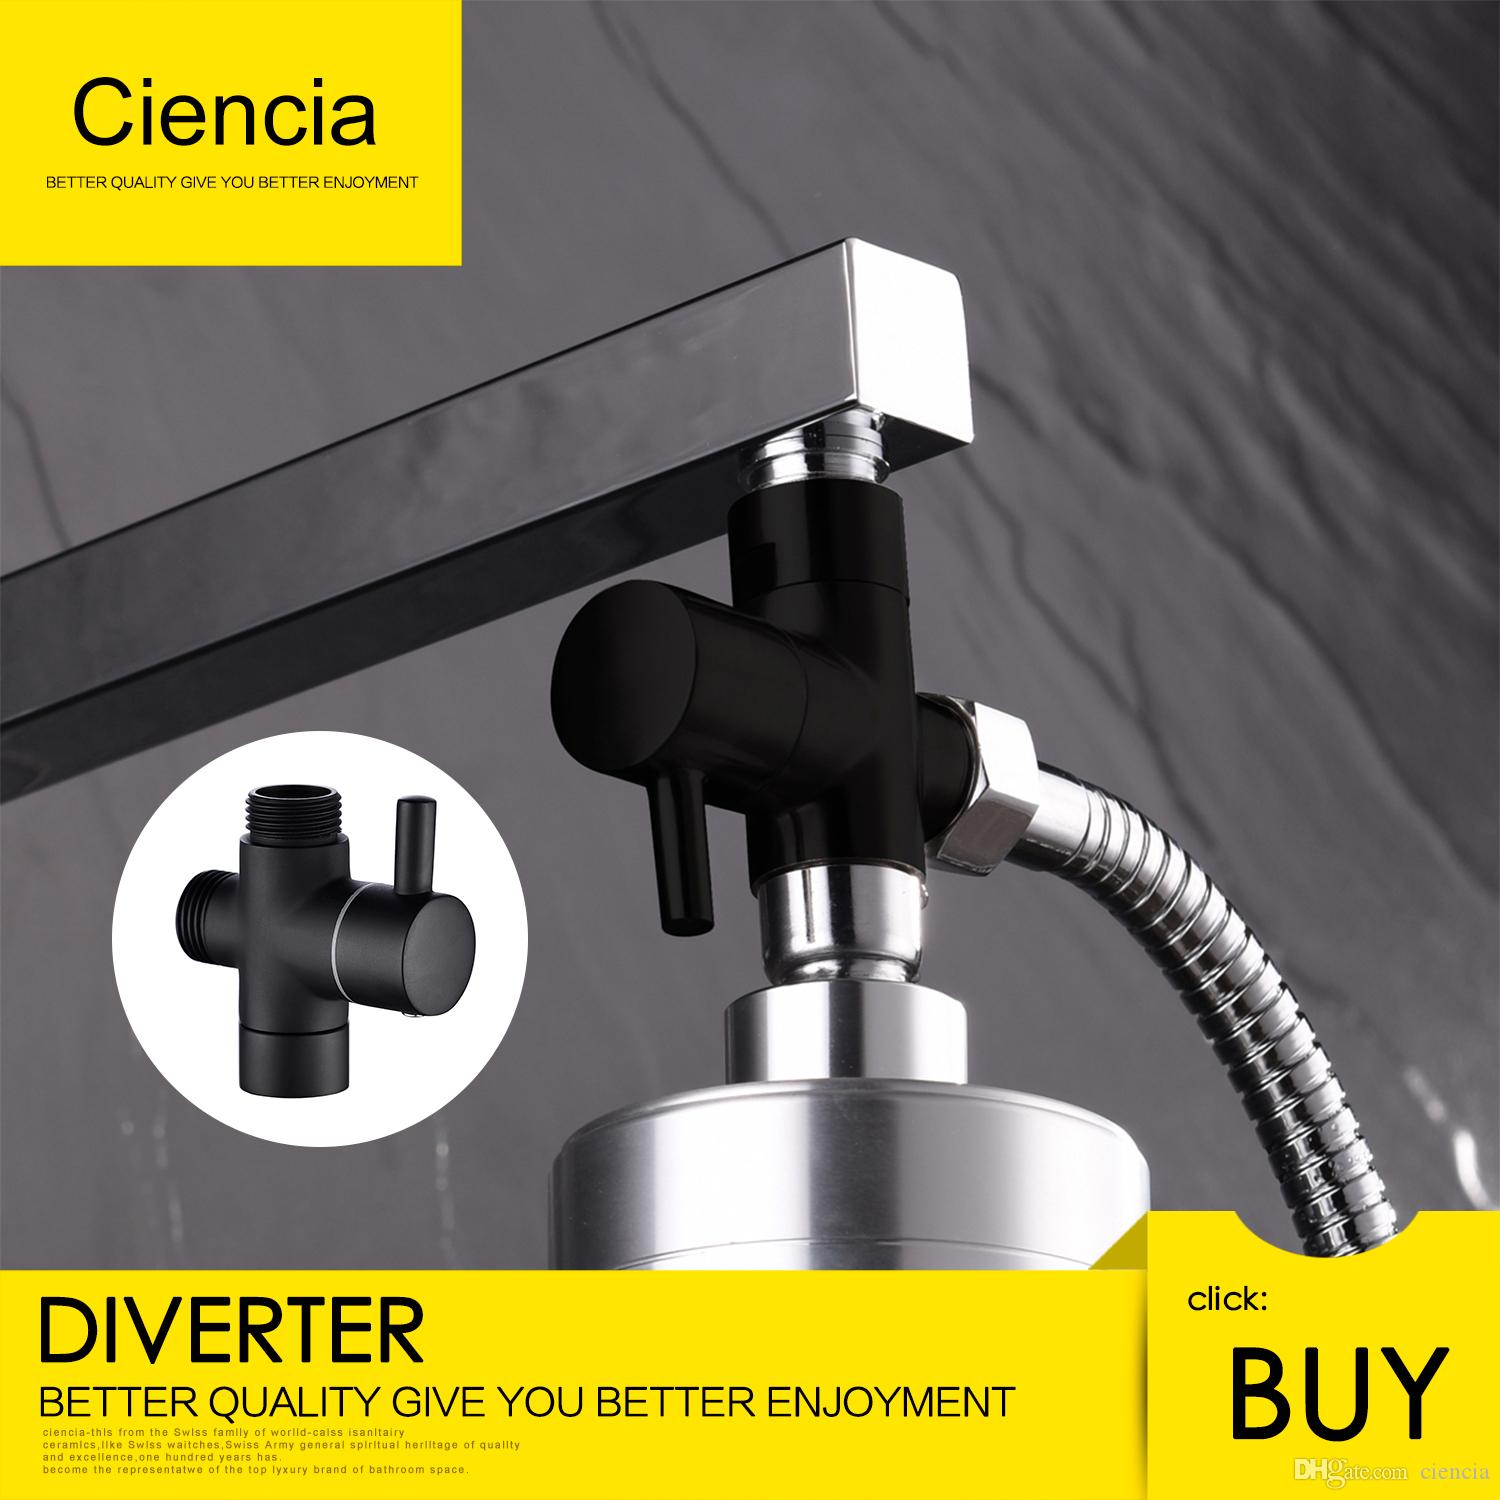 2019 Ciencia Brass Black 3 Way Diverter Valve For Handheld Shower Switch And Outlet Free Shipping Head Or Bath Tap T Adapter